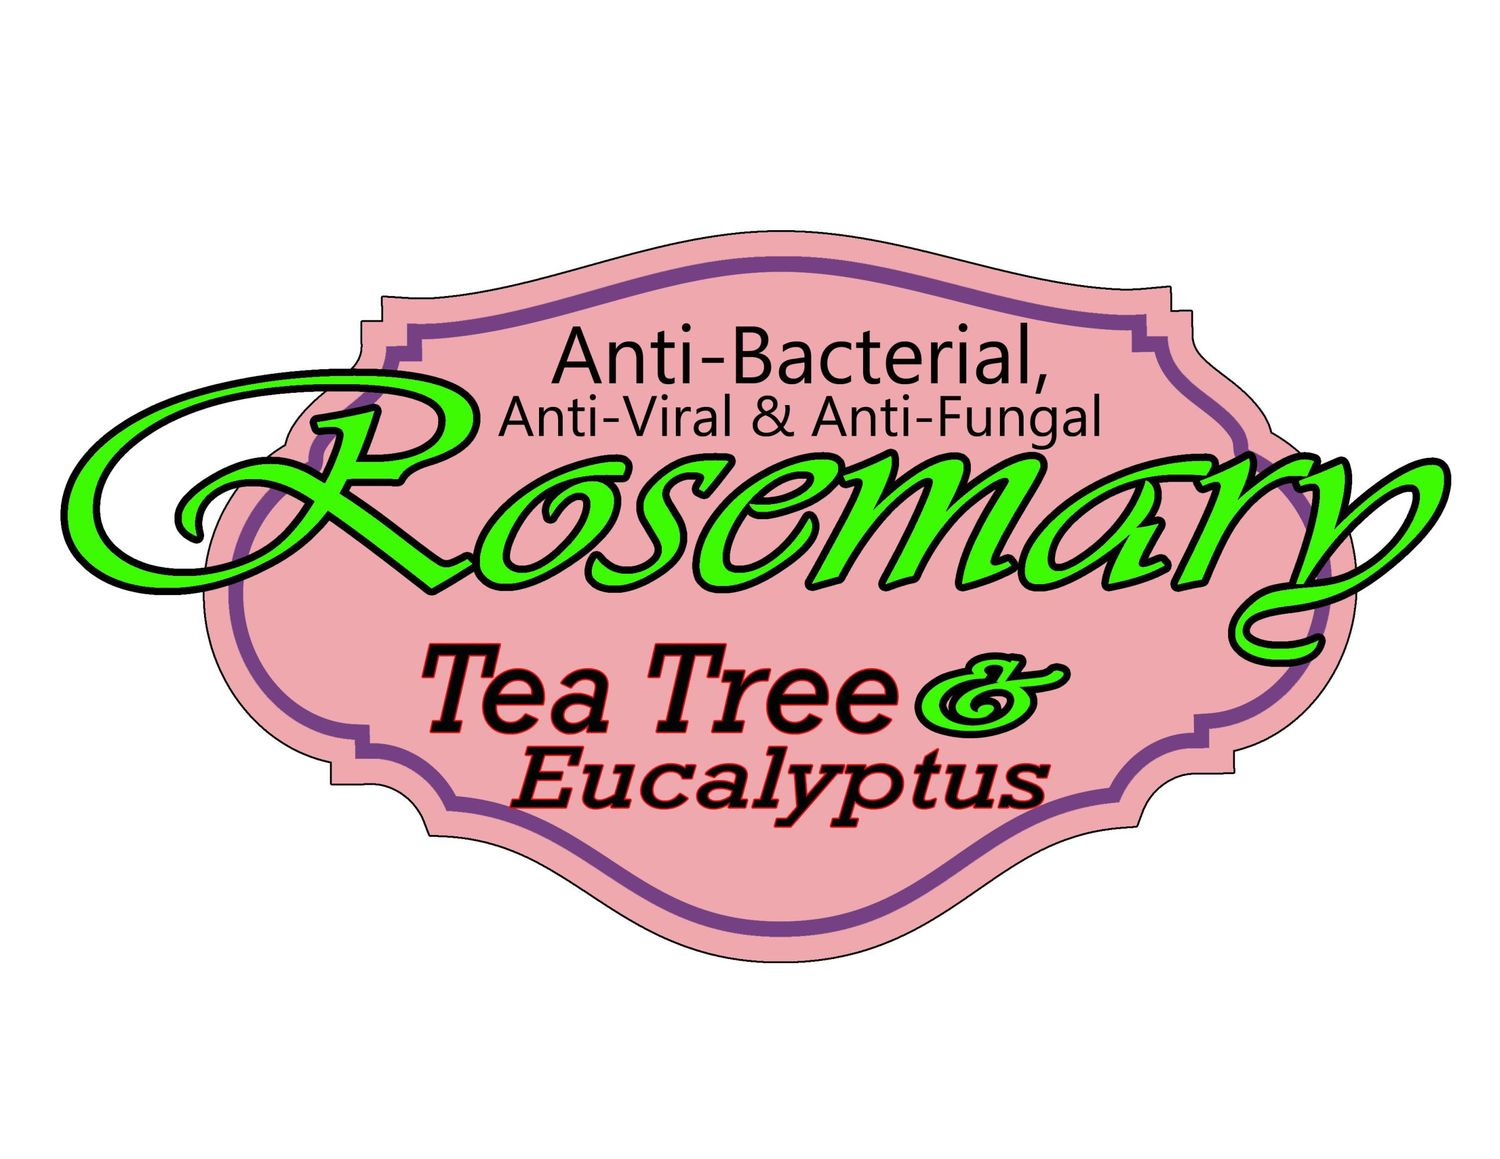 Rosemary, Tea Tree, & Eucalyptus